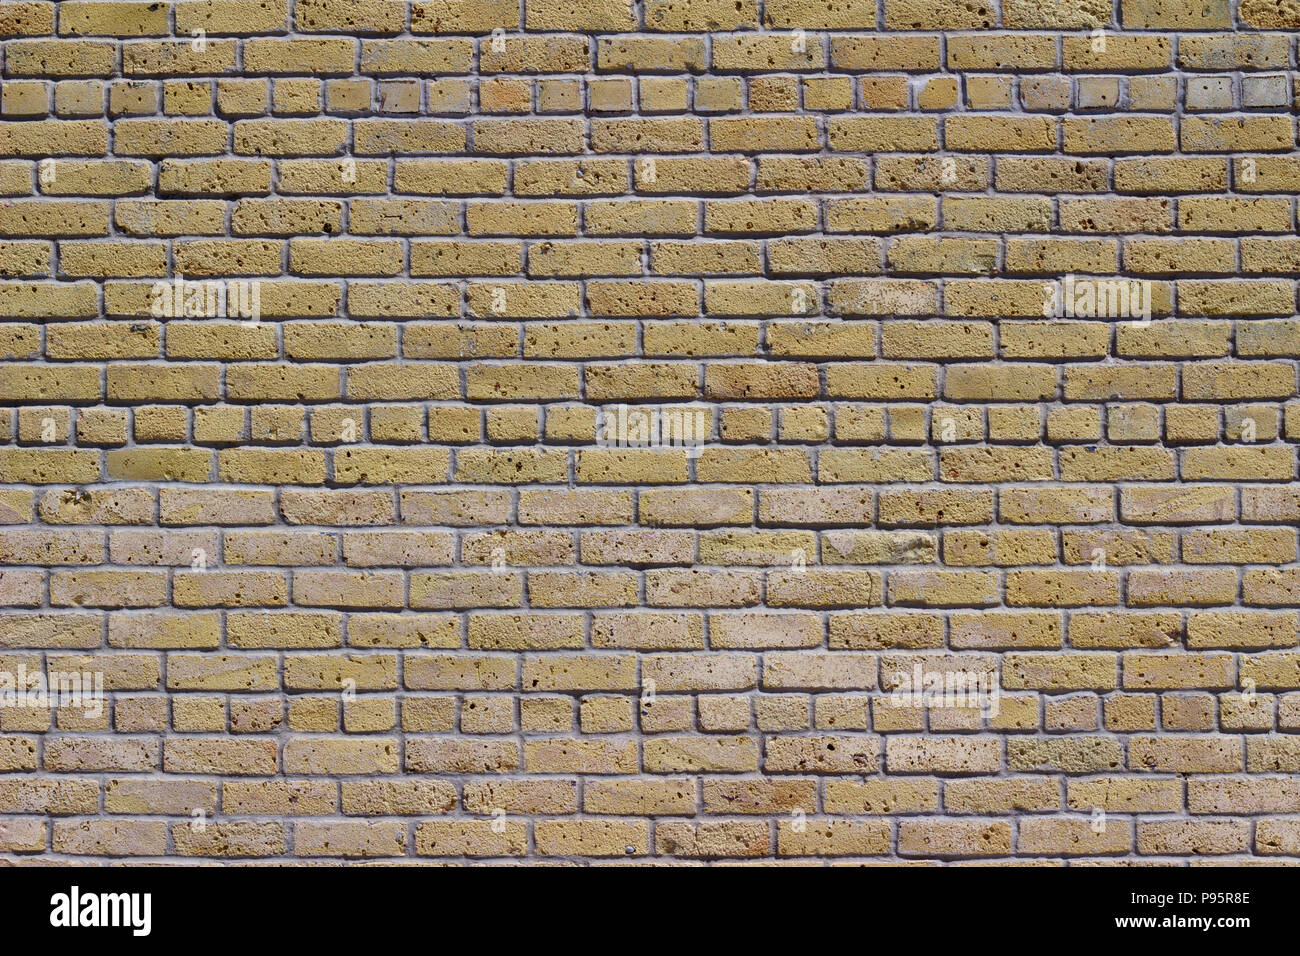 4857e72ce83242 Rustic old white beige brick wall background in common bond pattern with  grunge look - Stock